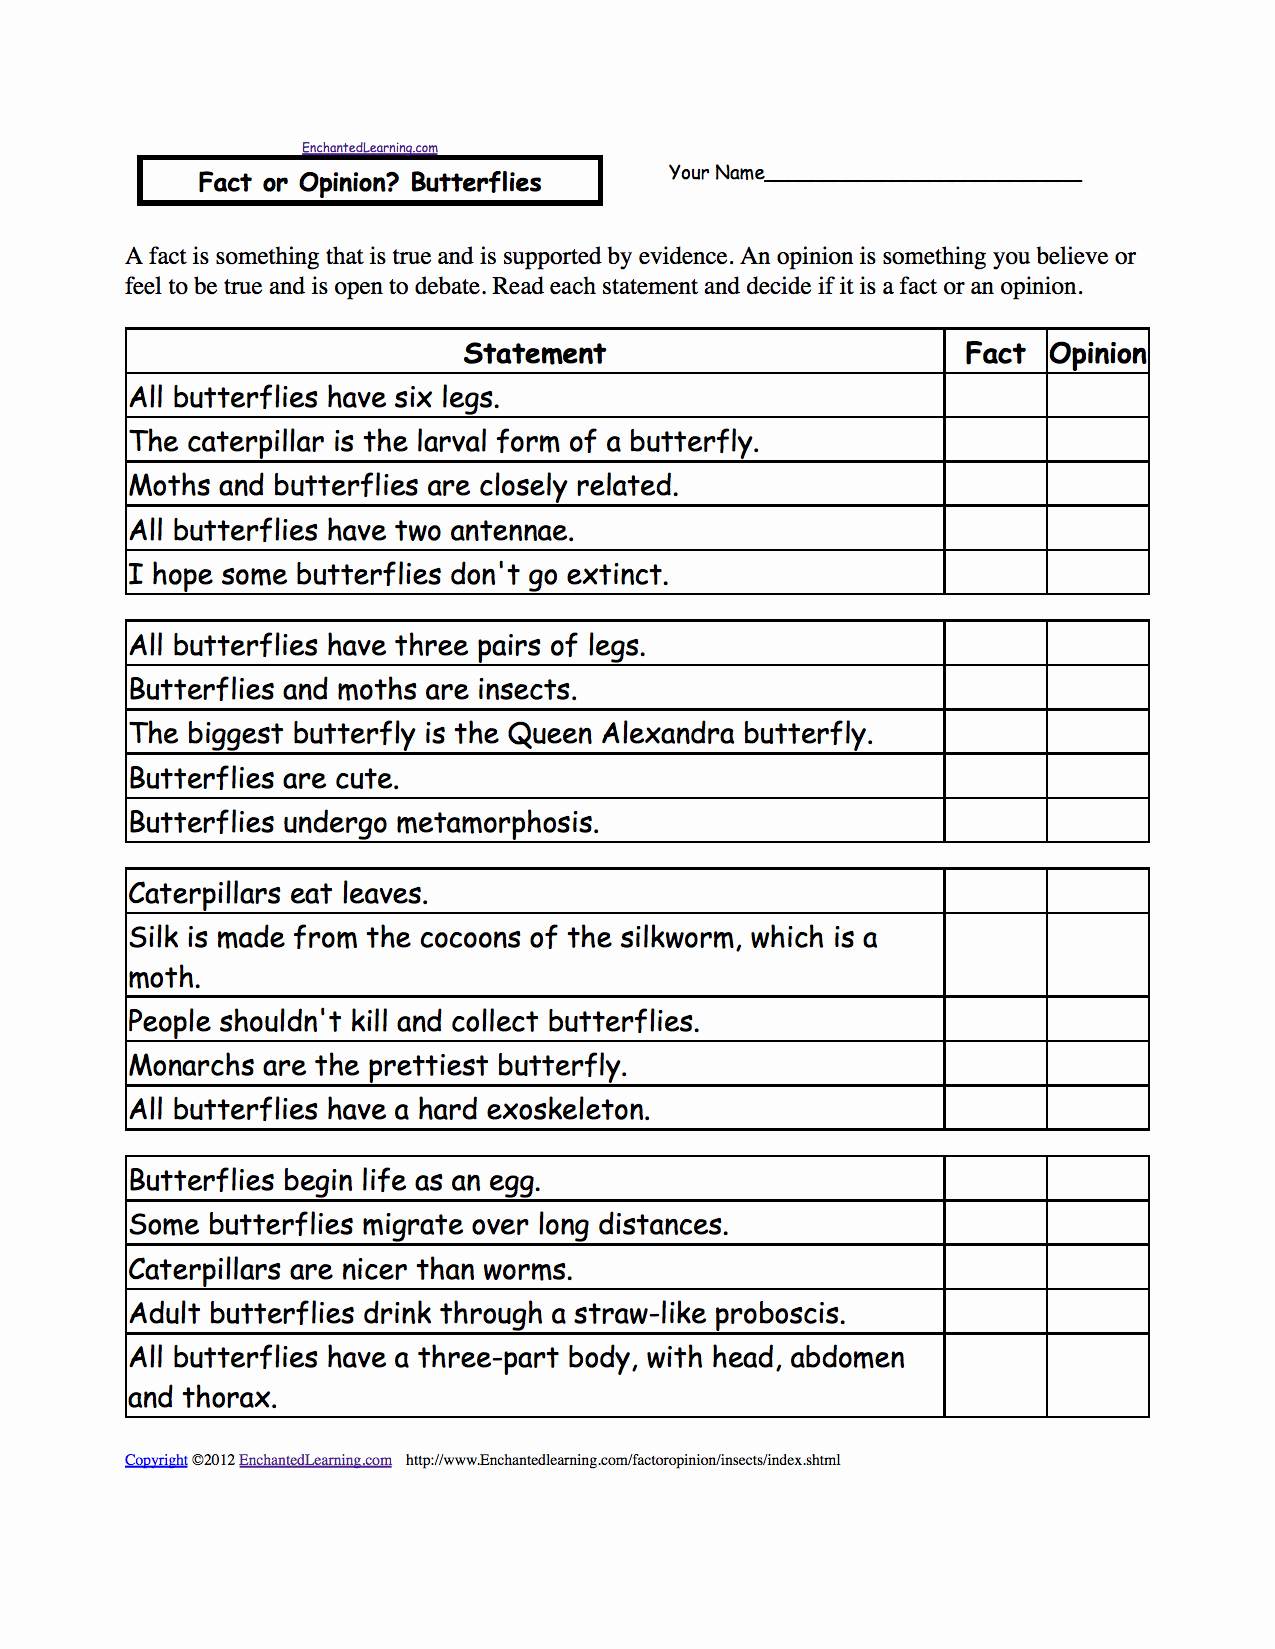 Fact or Opinion Worksheet Awesome Fact or Opinion Checkmark Worksheets to Print